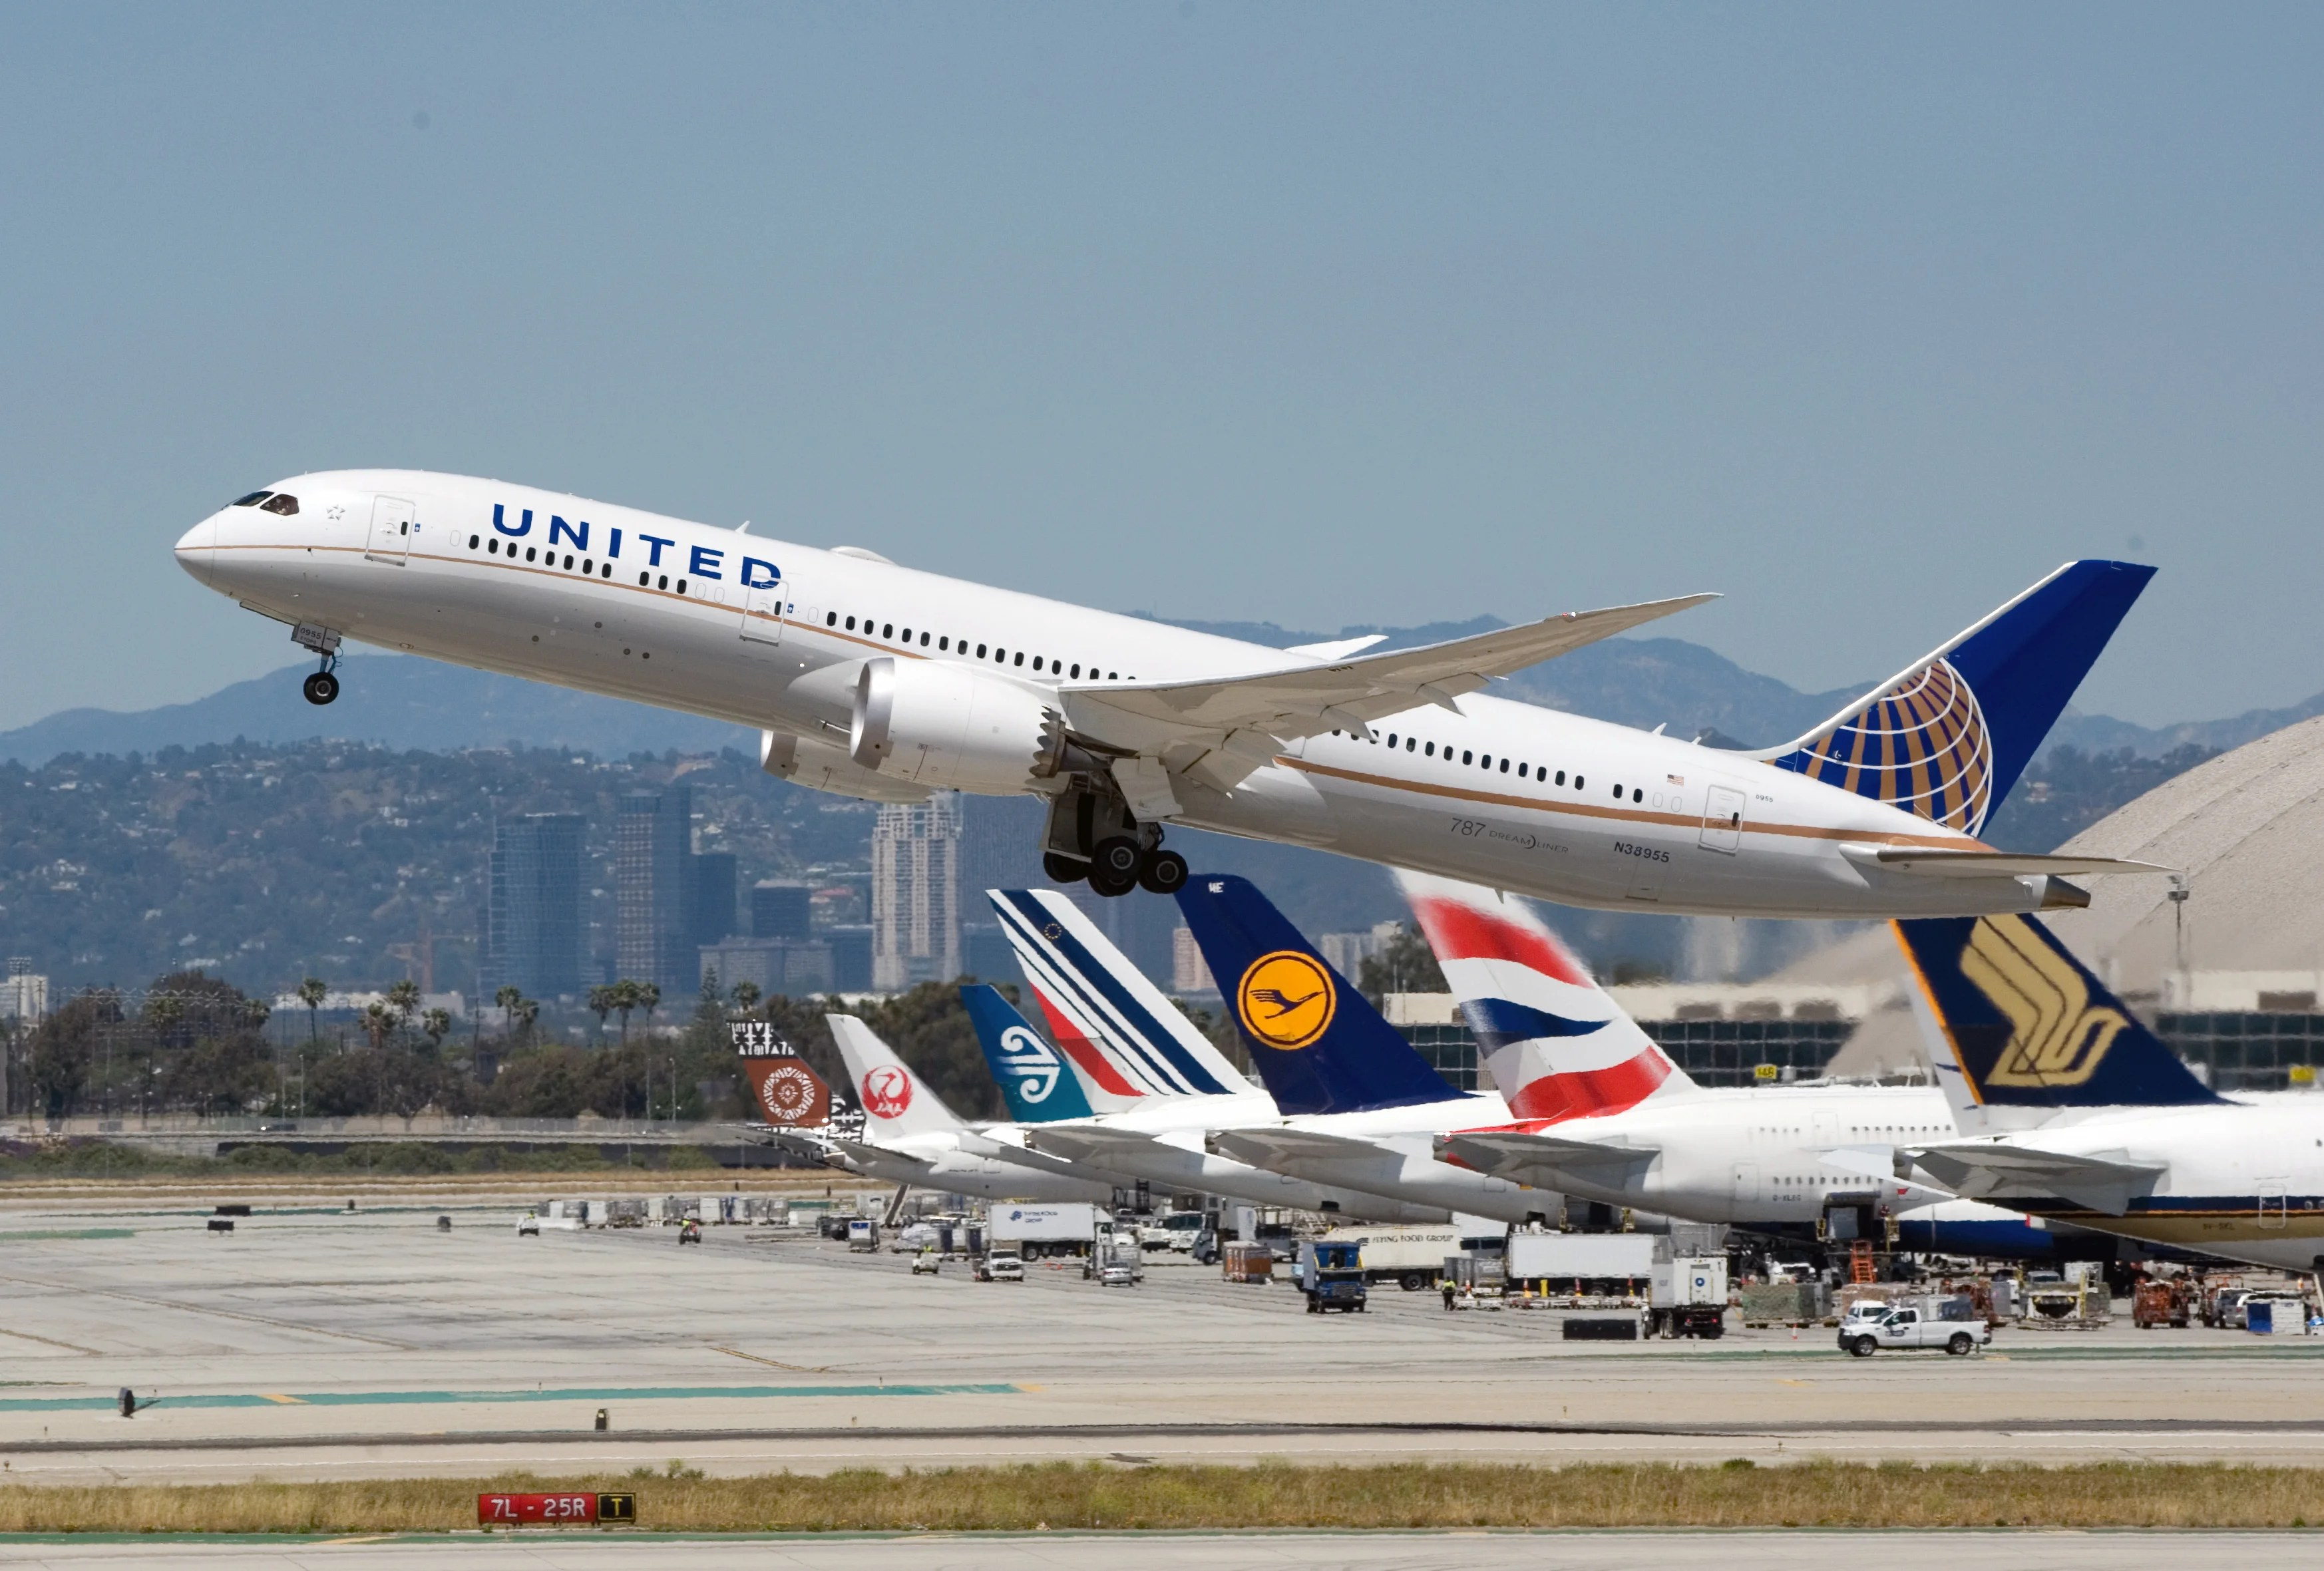 United adds more international flying with expanded July schedule